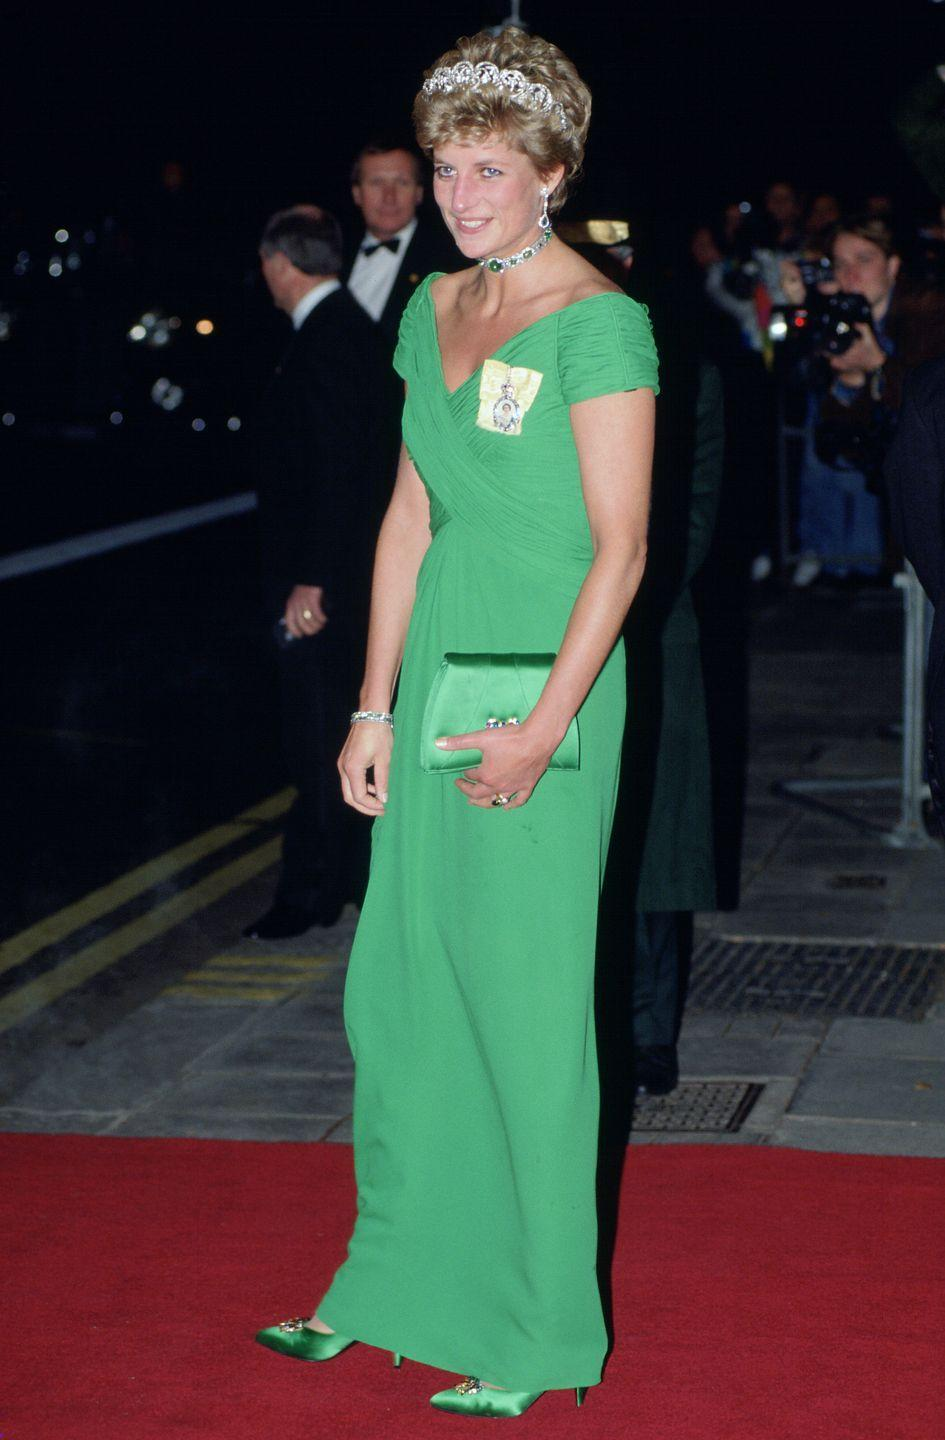 <p>The cap sleeve evening gown Princess Diana wore in 1993 was designed by one of her favorite designers, Catherine Walker. The bright green chiffon fabric and sleek column design is giving us serious mermaid tail vibes.</p>